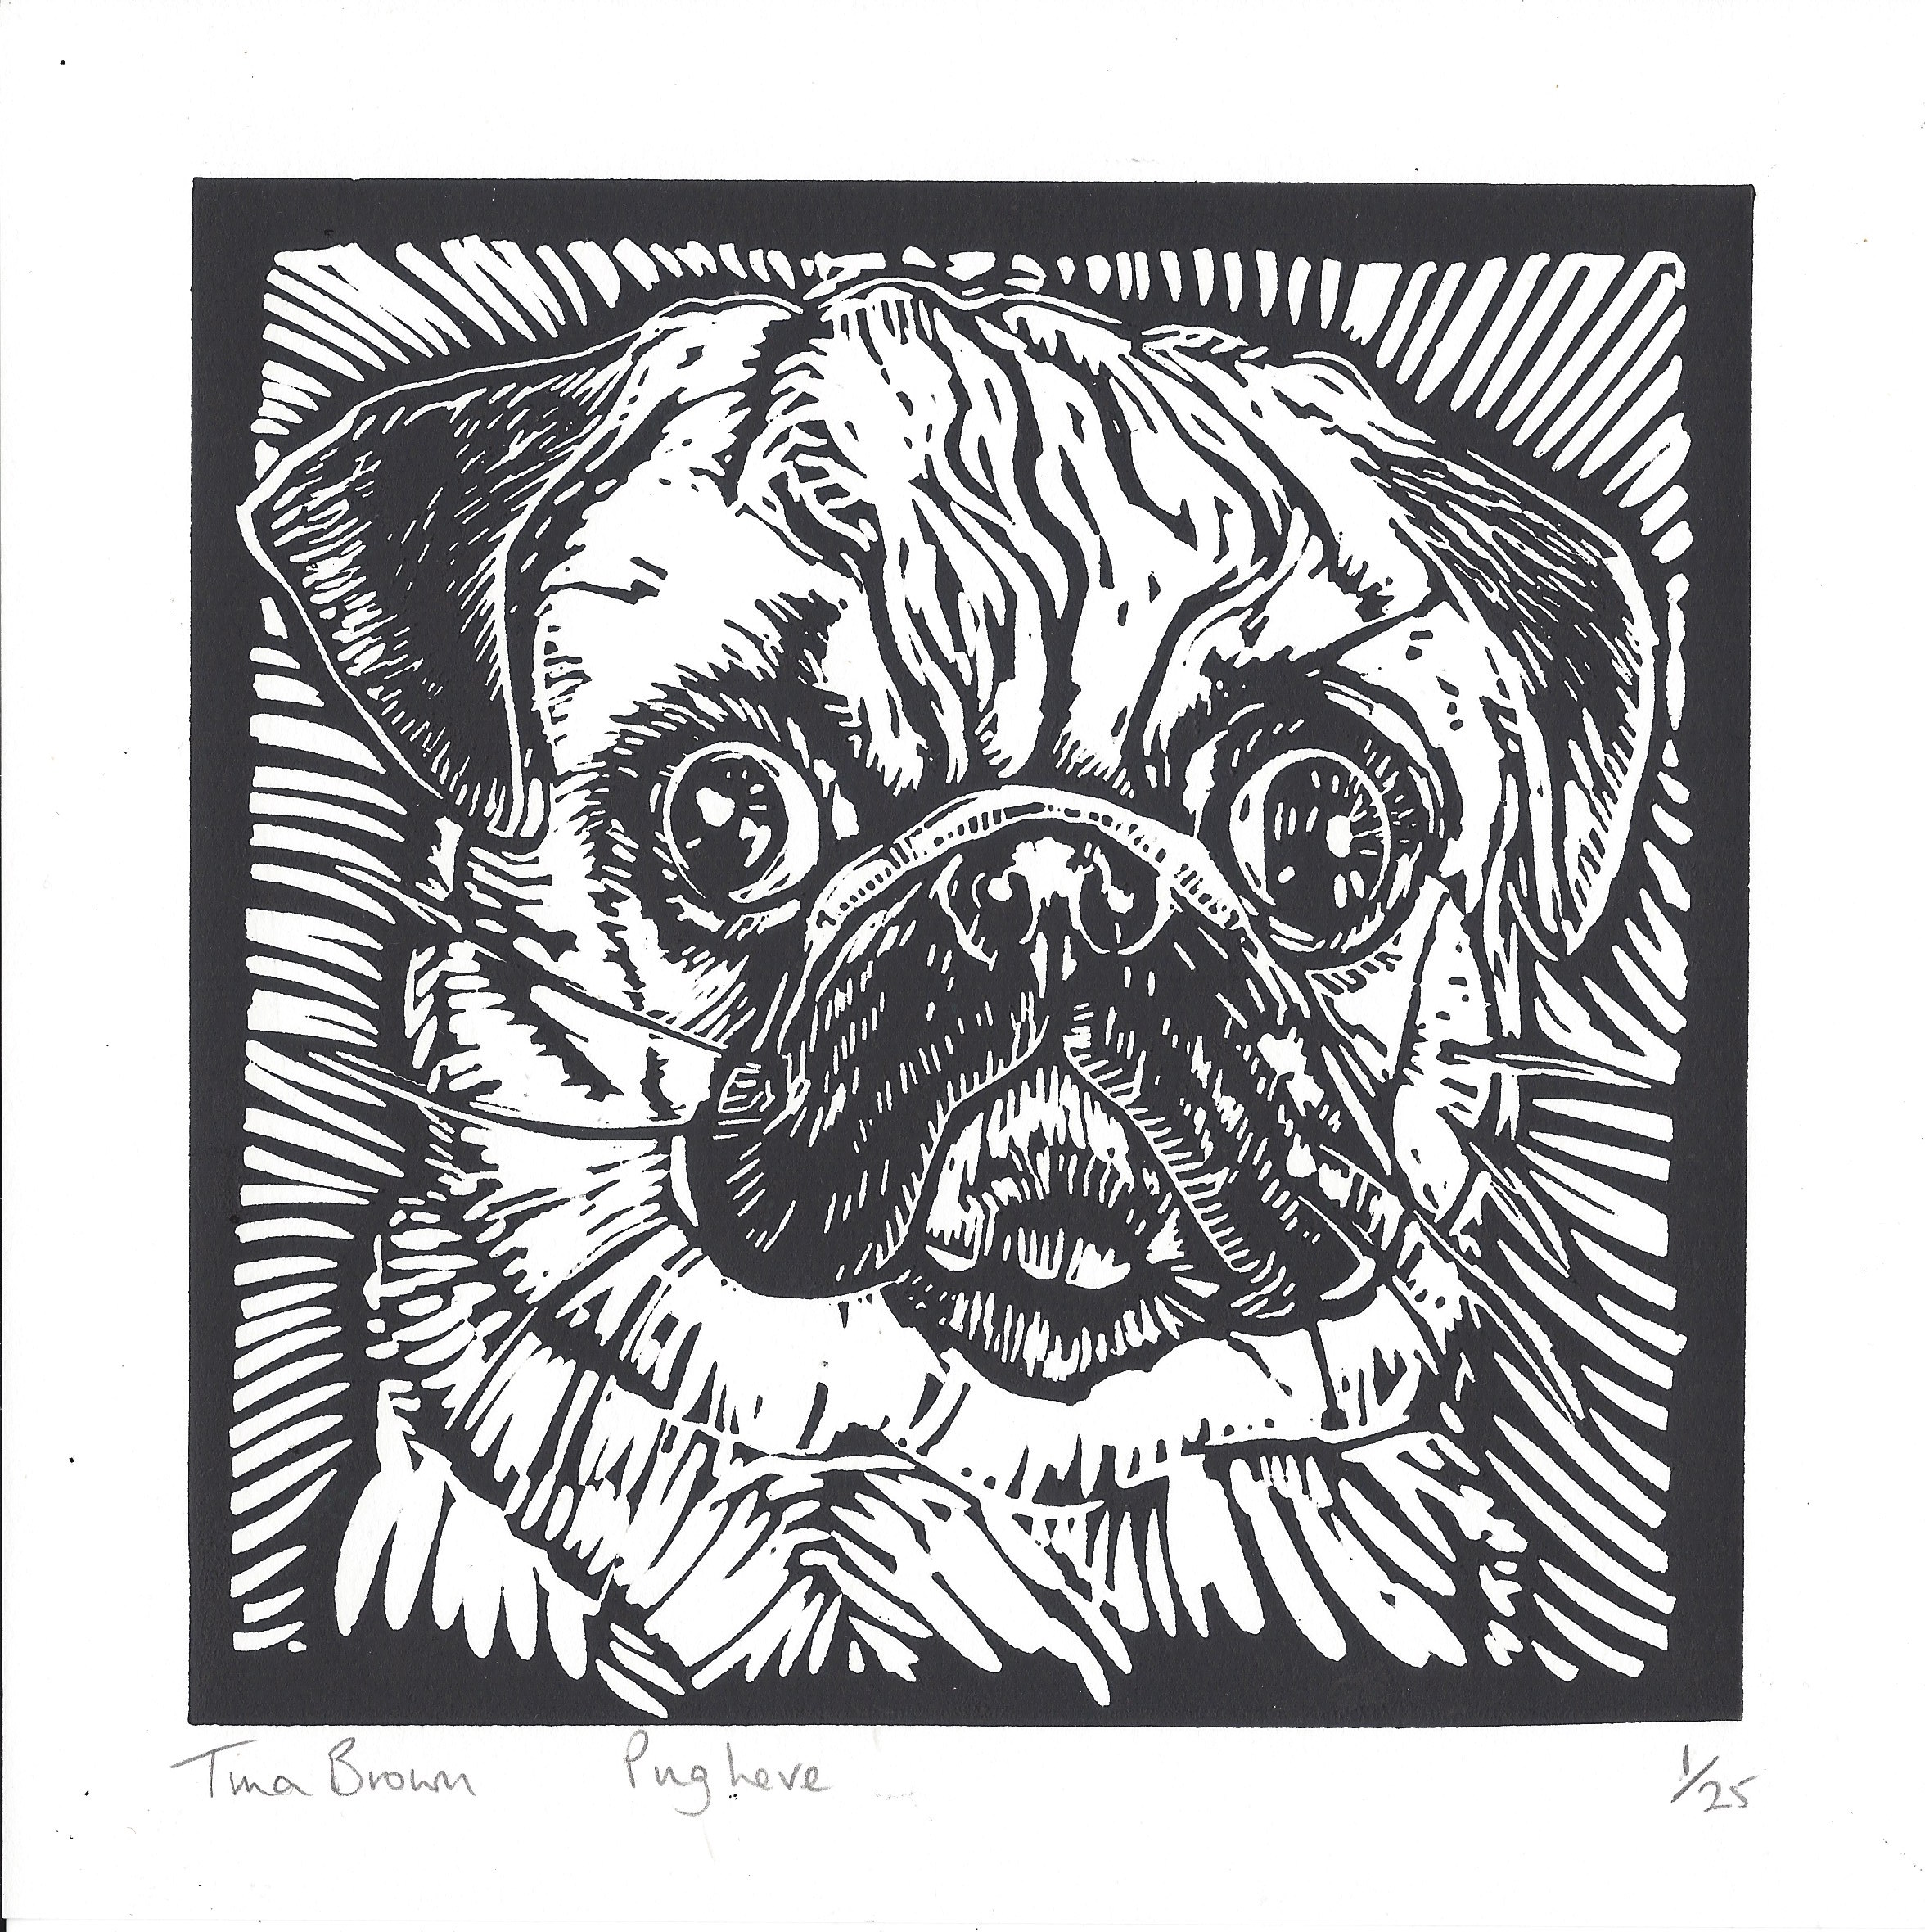 Pug Love - Tina Brown - Hazelnut Press 2015